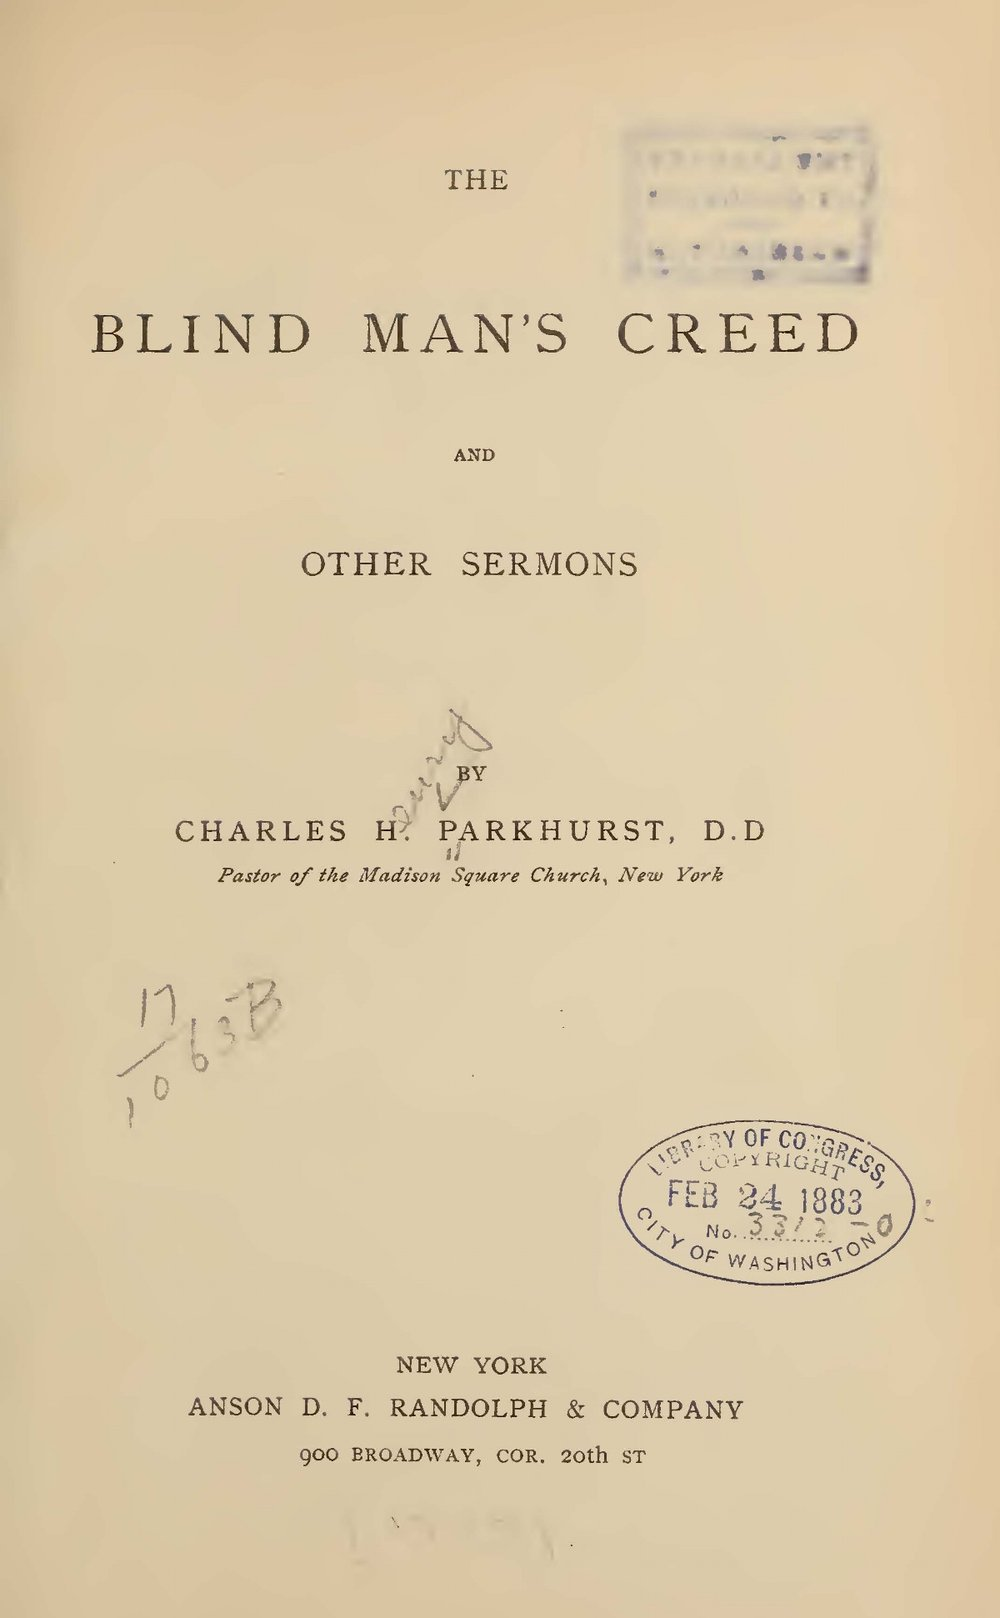 Parkhurst, Charles Henry, The Blind Man's Creed Title Page.jpg